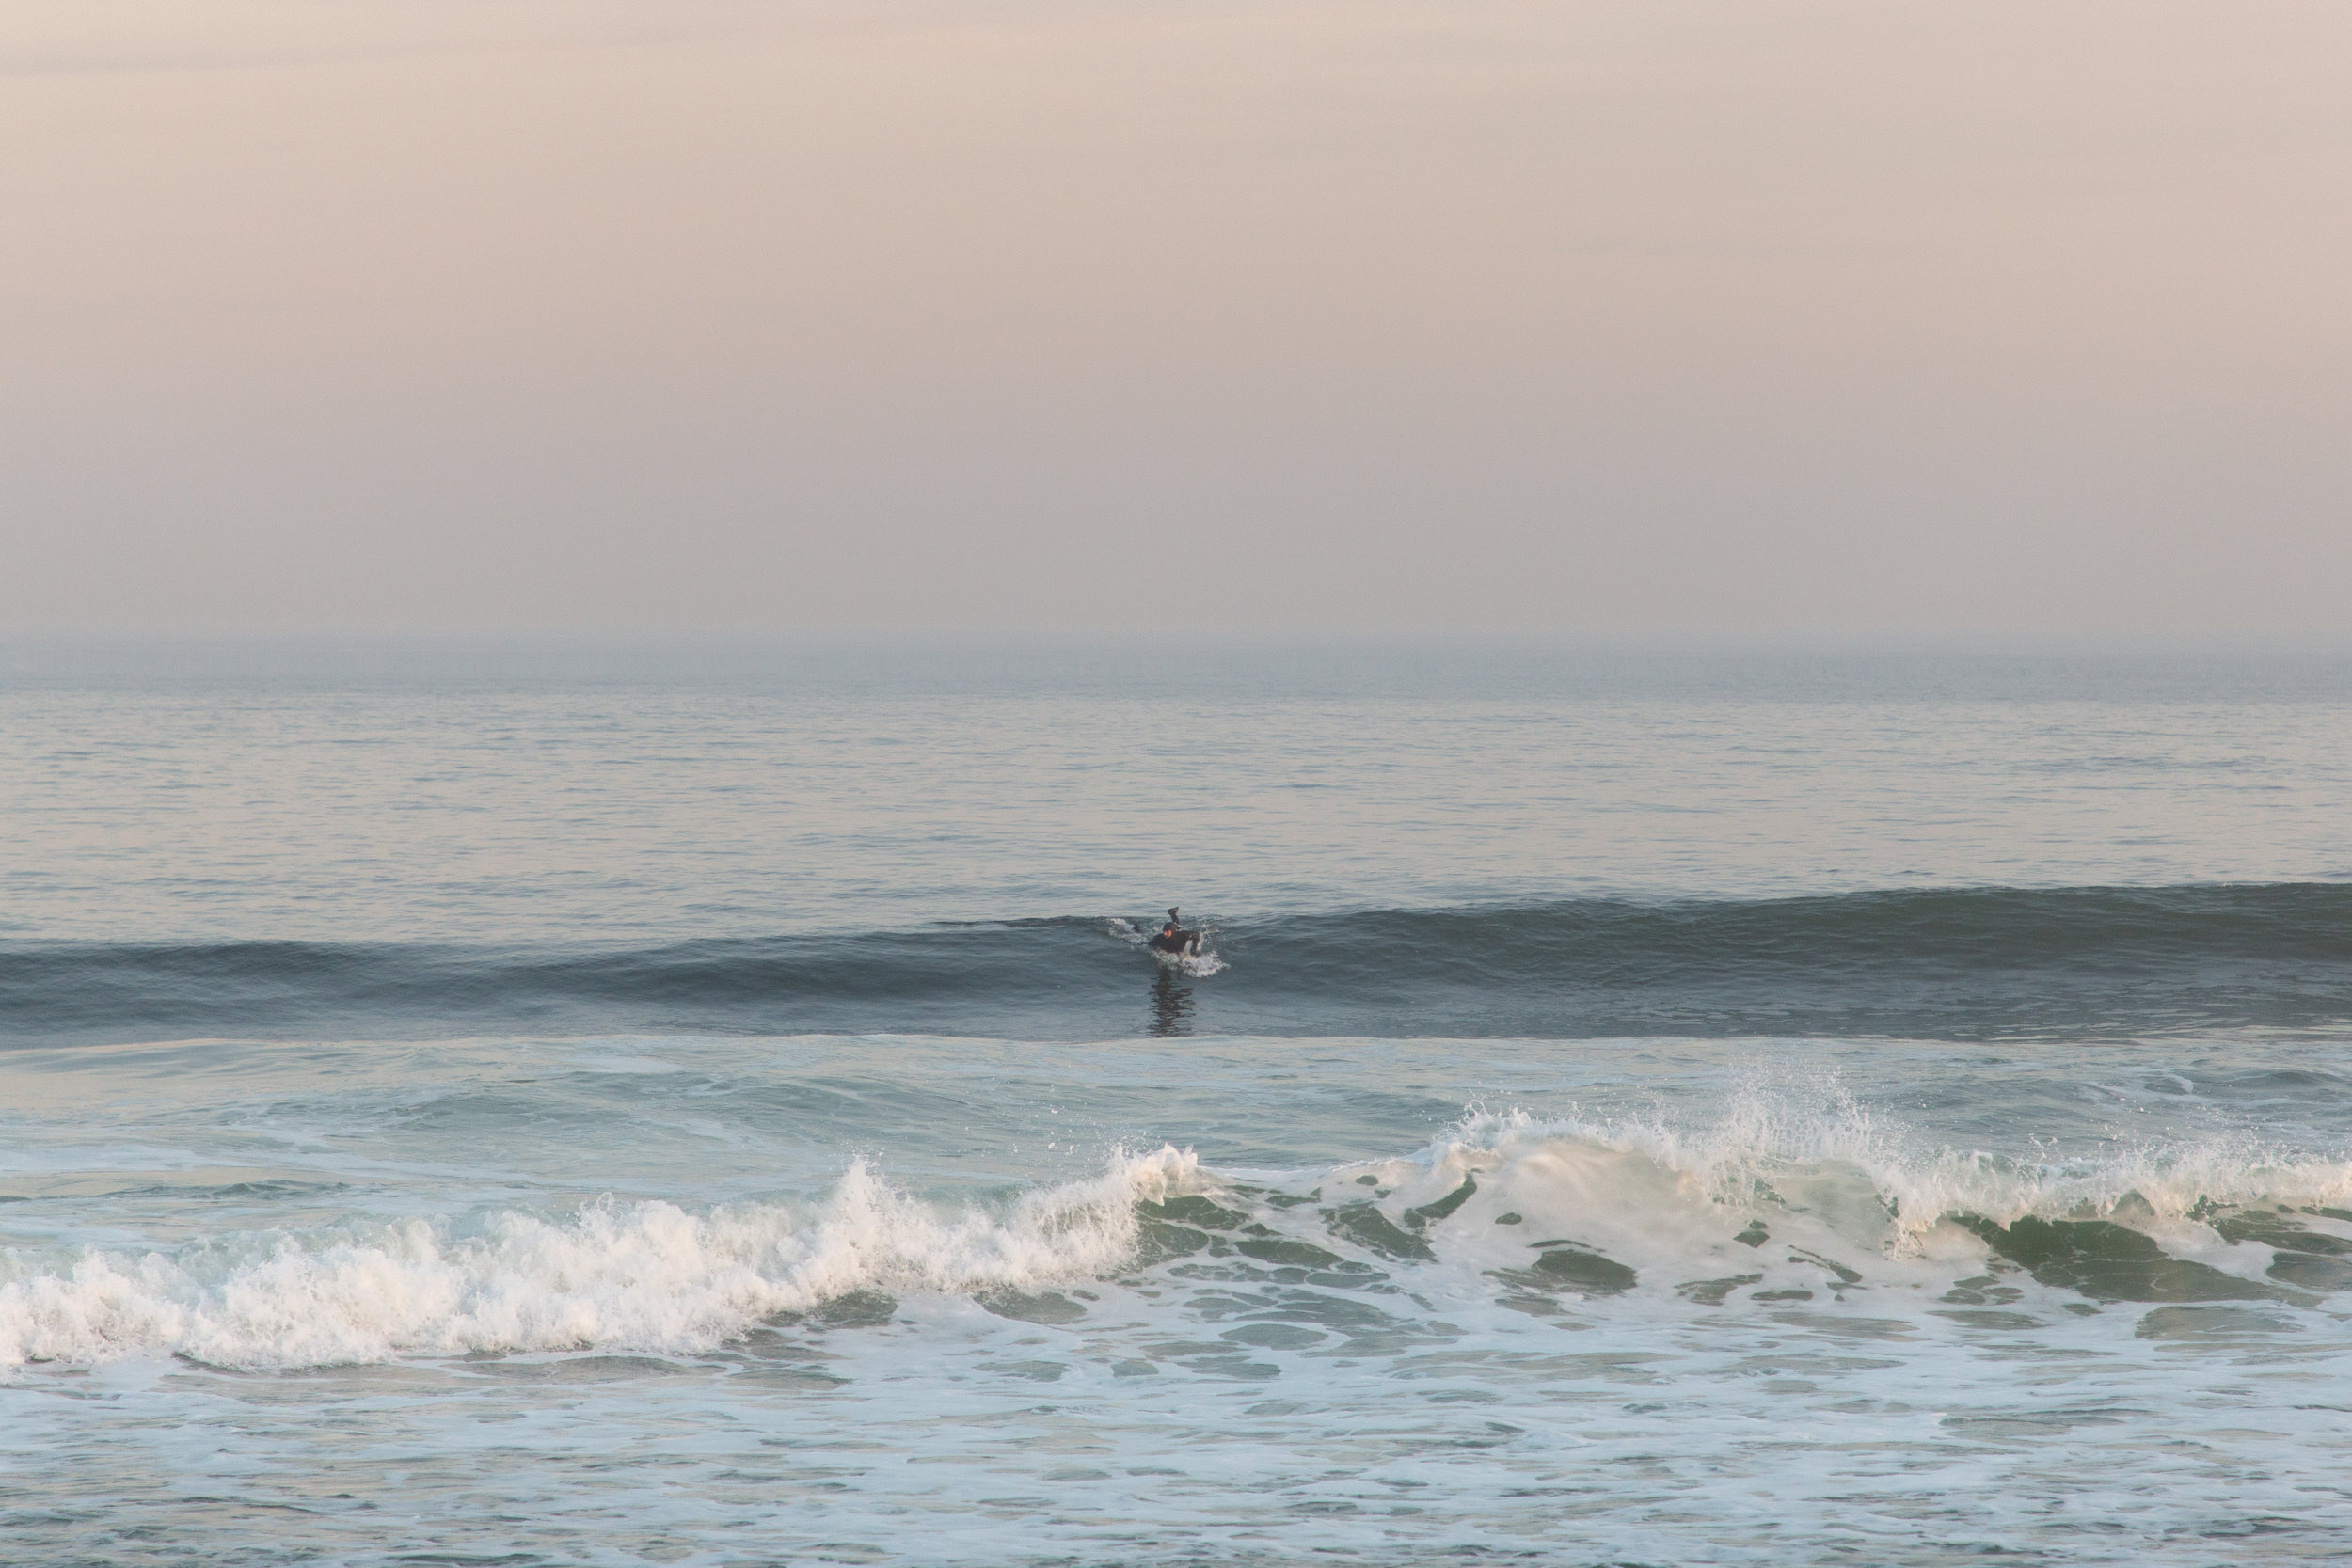 surfer in Asbury Park, New Jersey. Photo by Kayleigh Ann Archbold.